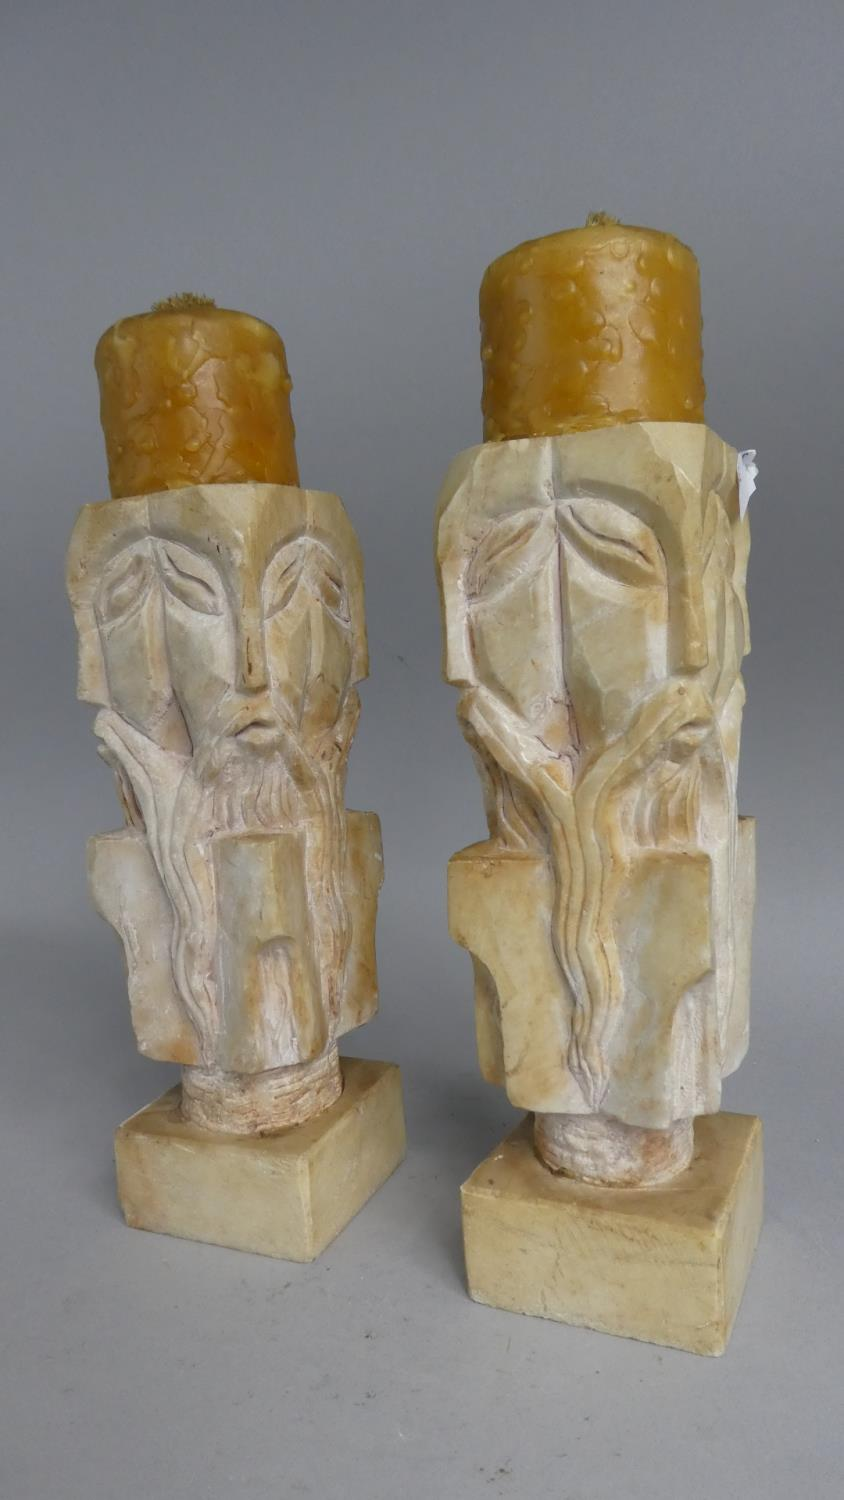 Lot 75 - A Pair of Modern Carved Stone Candlesticks each with Four Side Masks, 24cm High